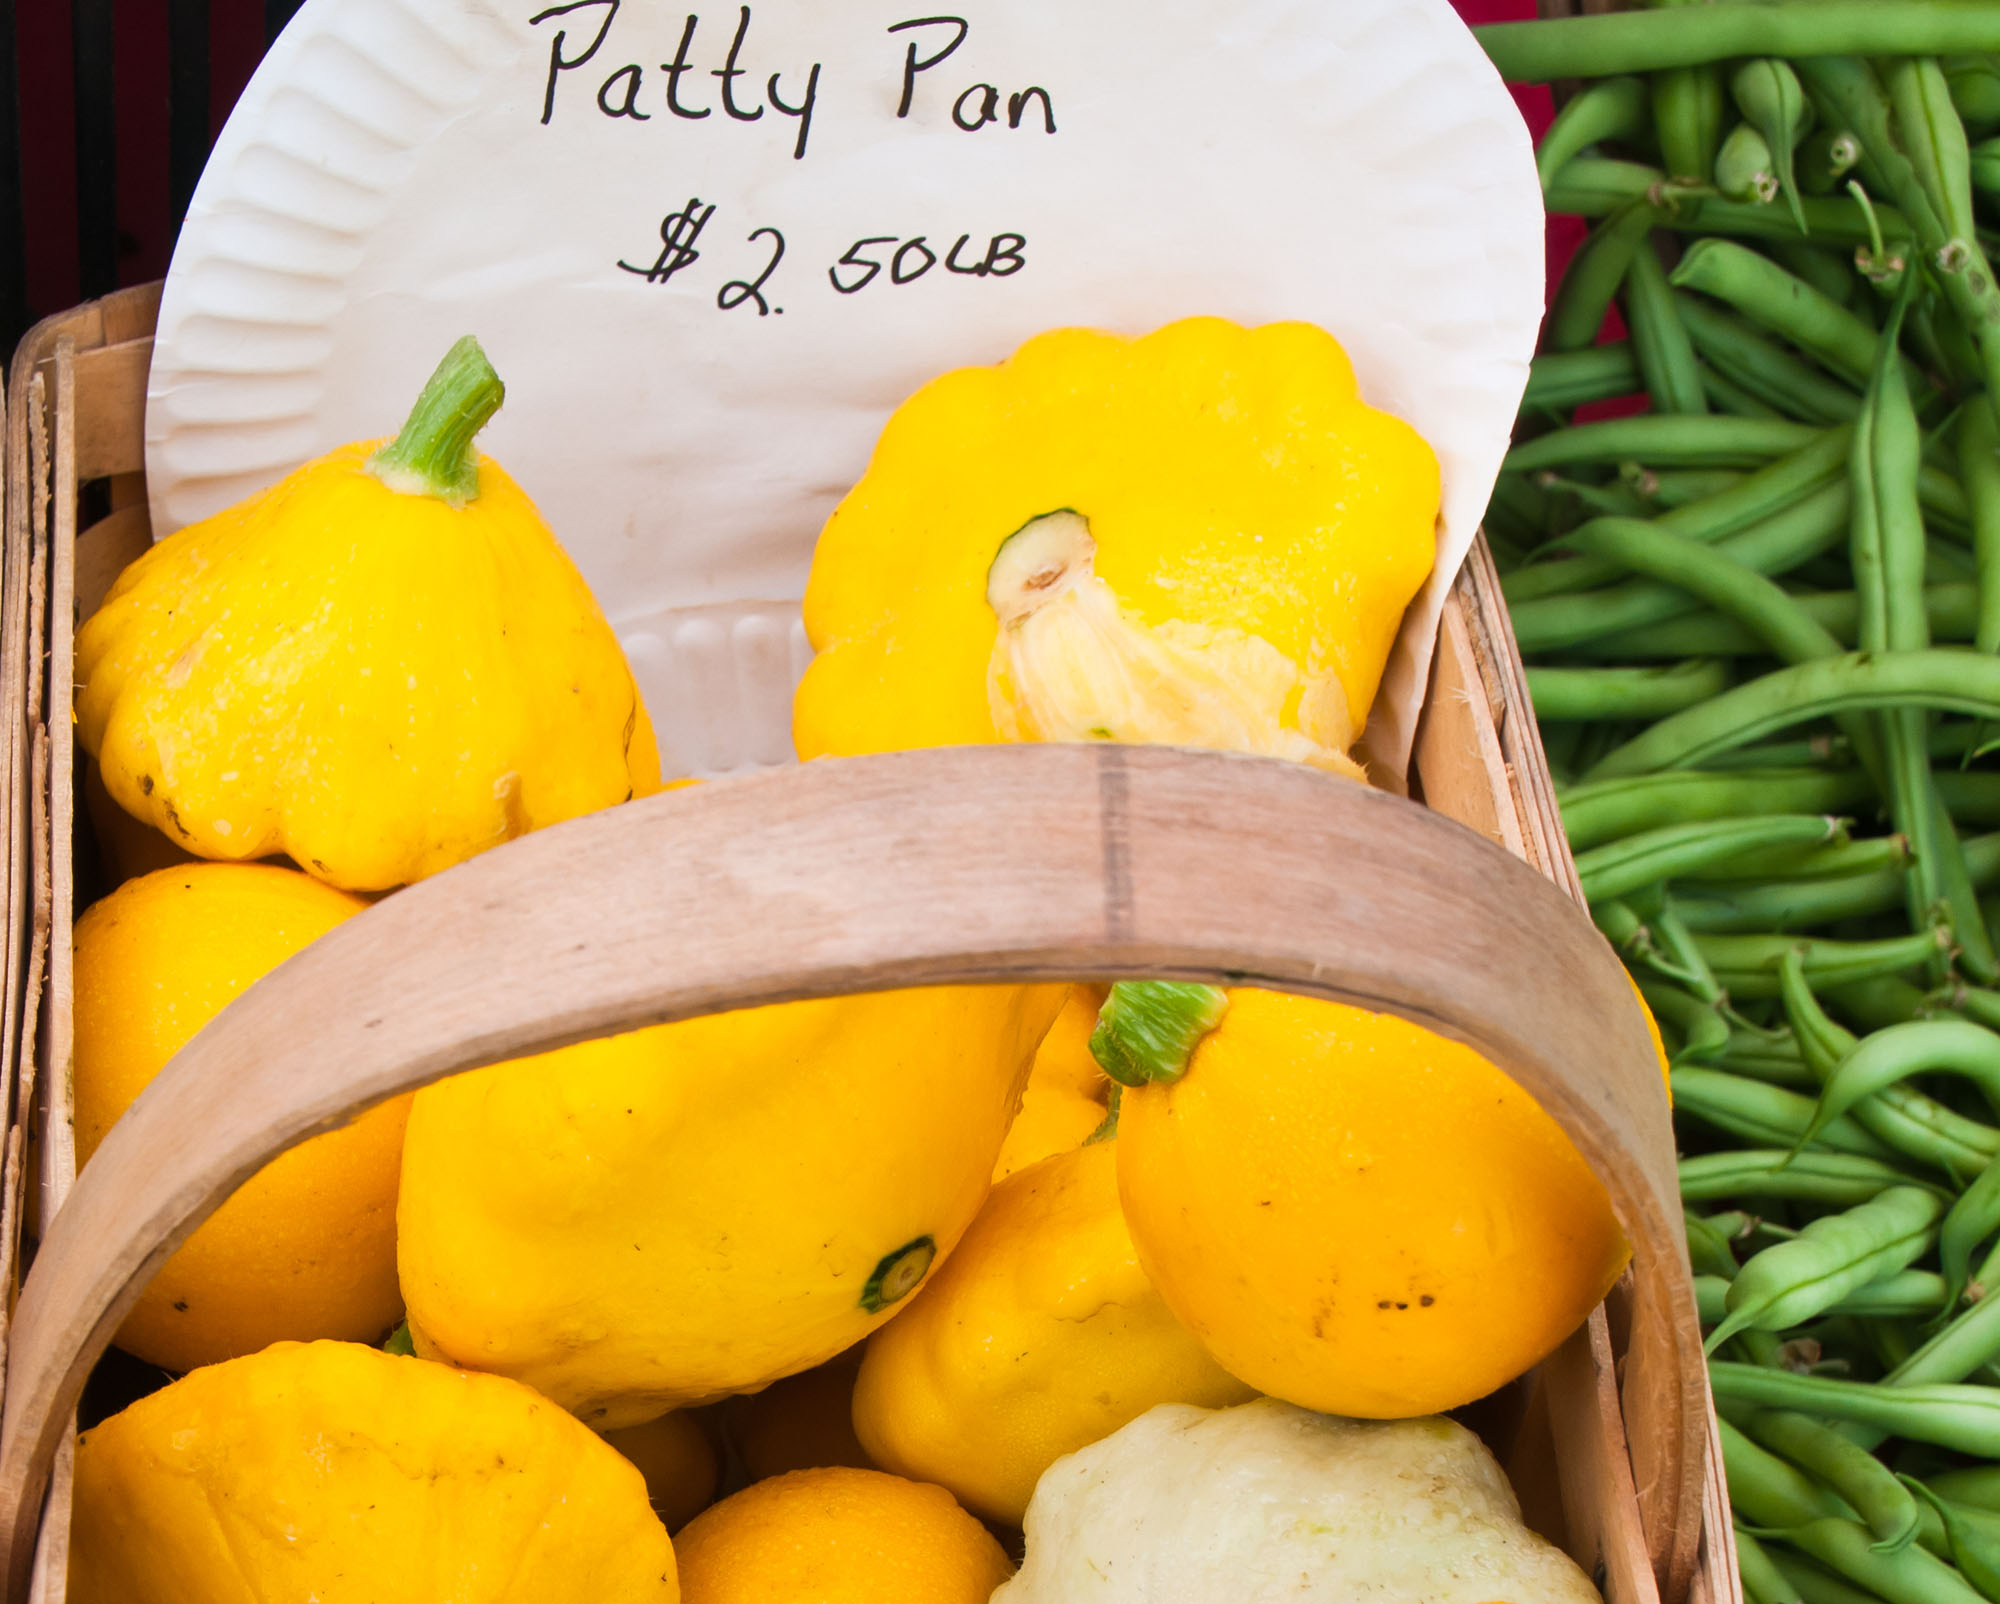 The Perfect Recipe For Stuffed Patty Pan Squash